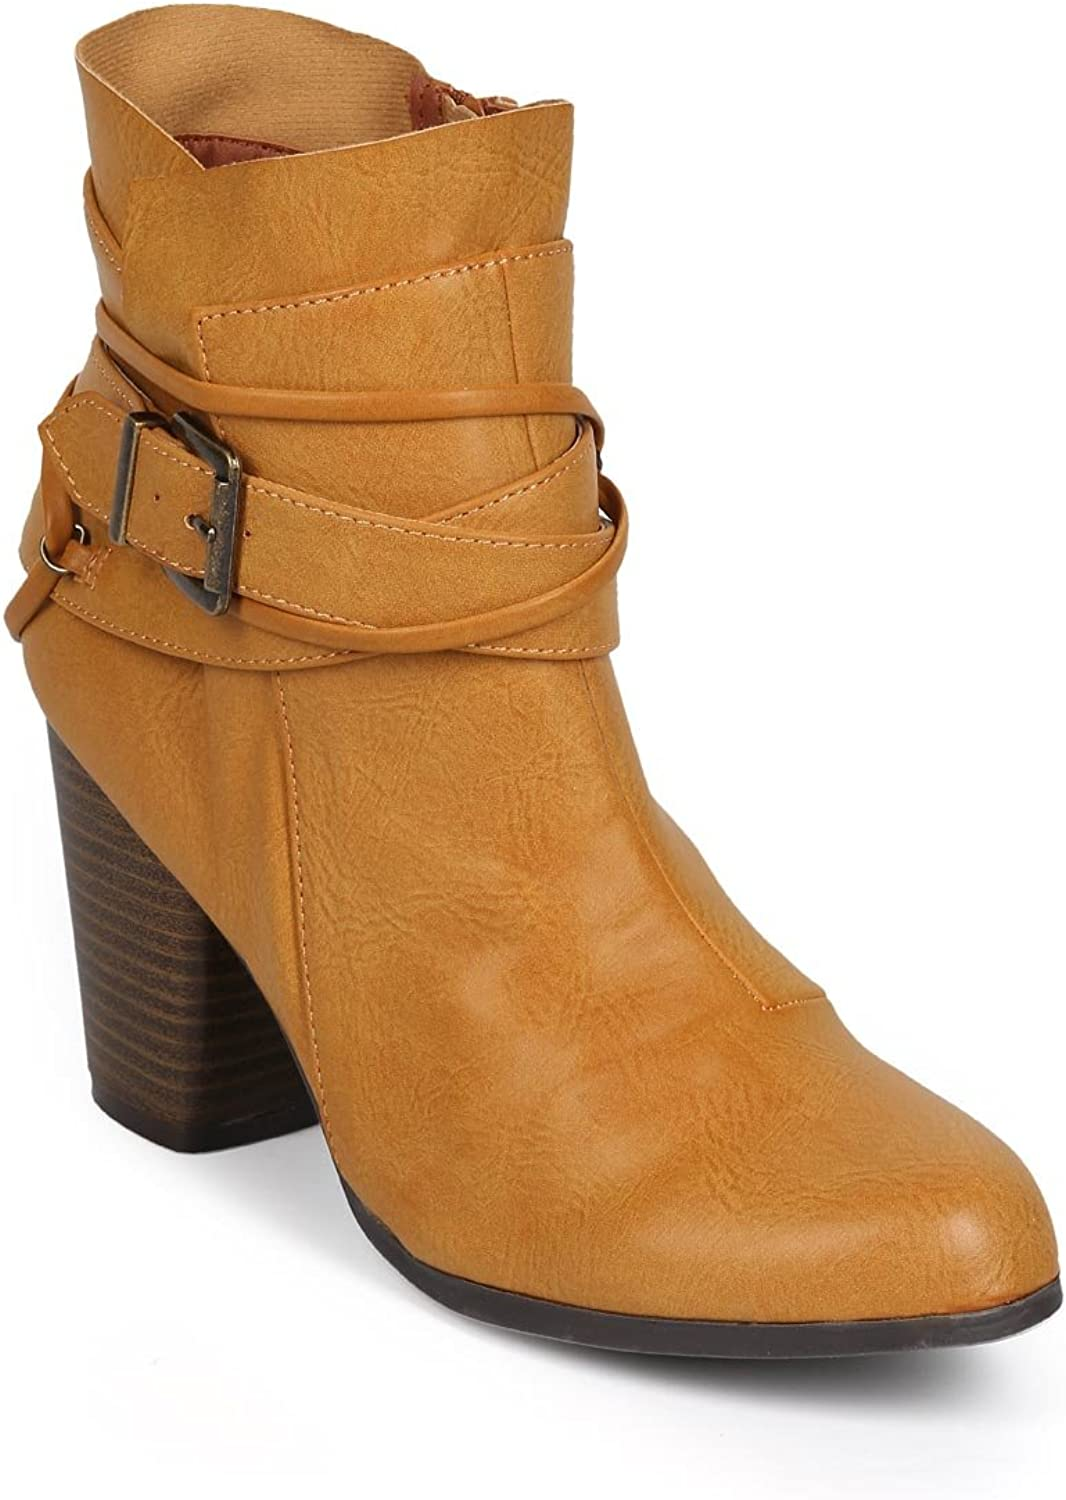 Qupid Women Leatherette Strappy Chunky Heel Zip Riding Bootie DJ34 - Camel Leatherette